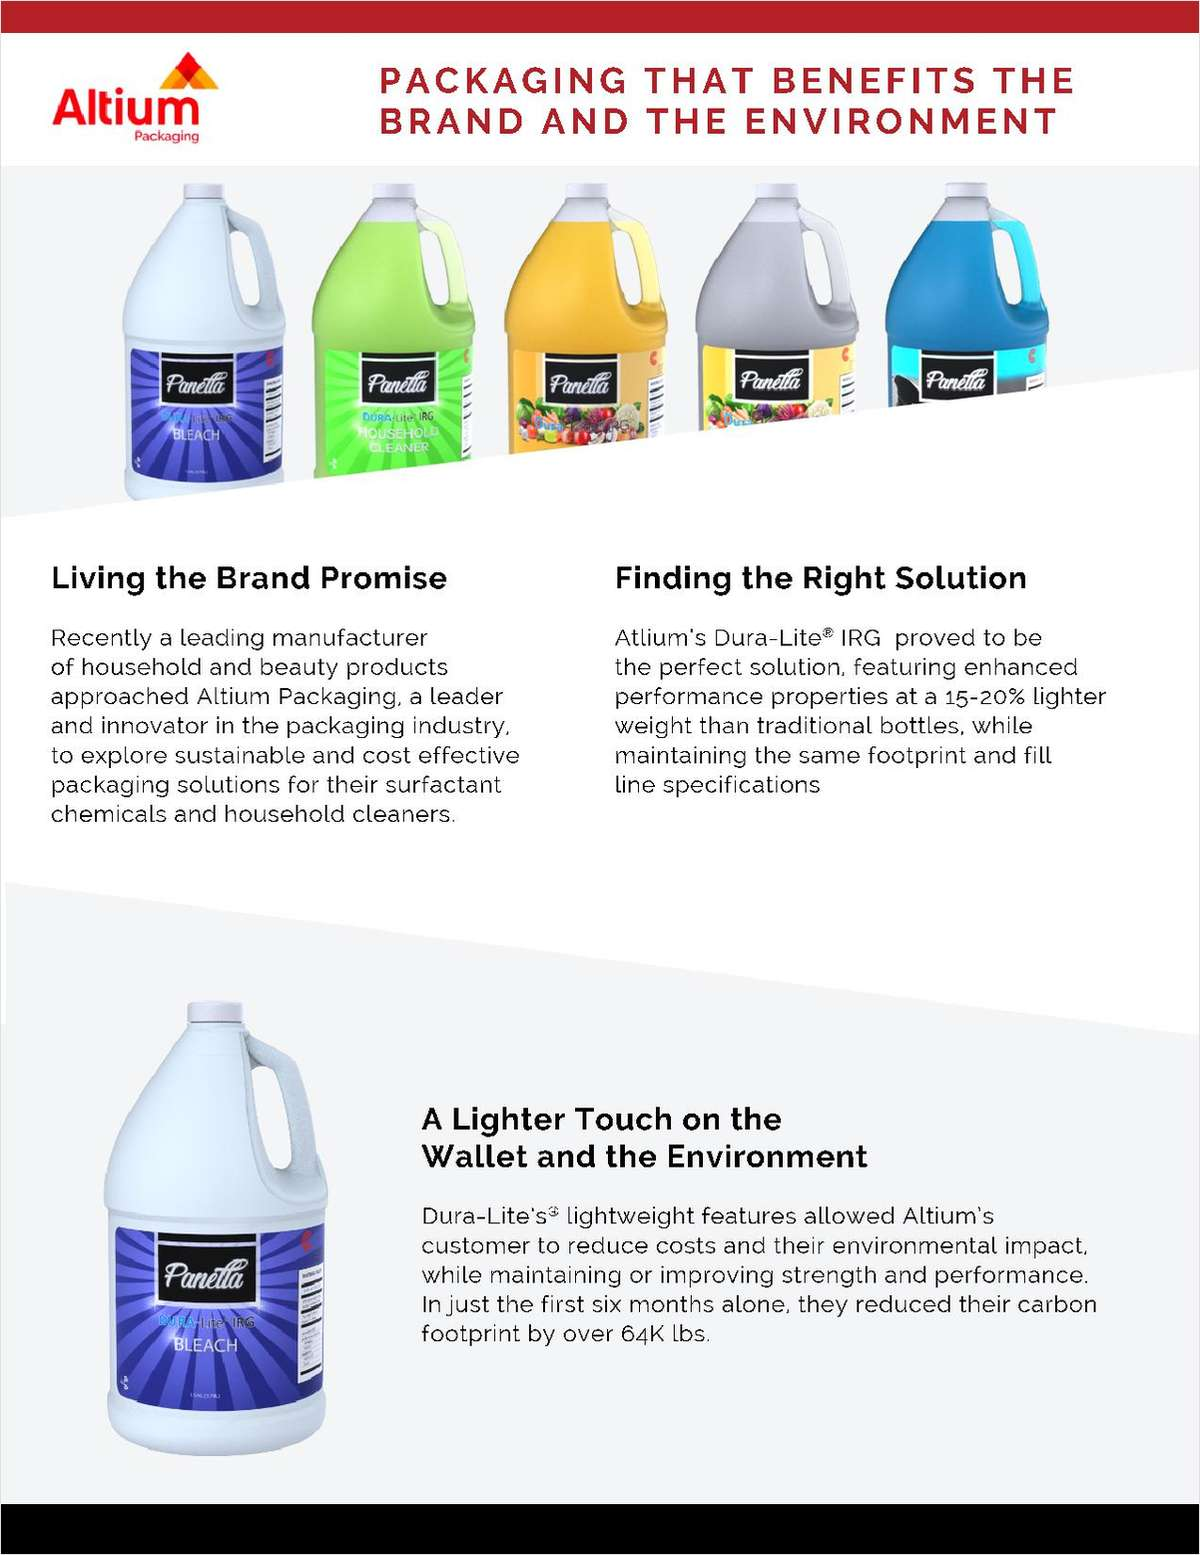 Packaging that Makes Sense for Your Brand and the Environment